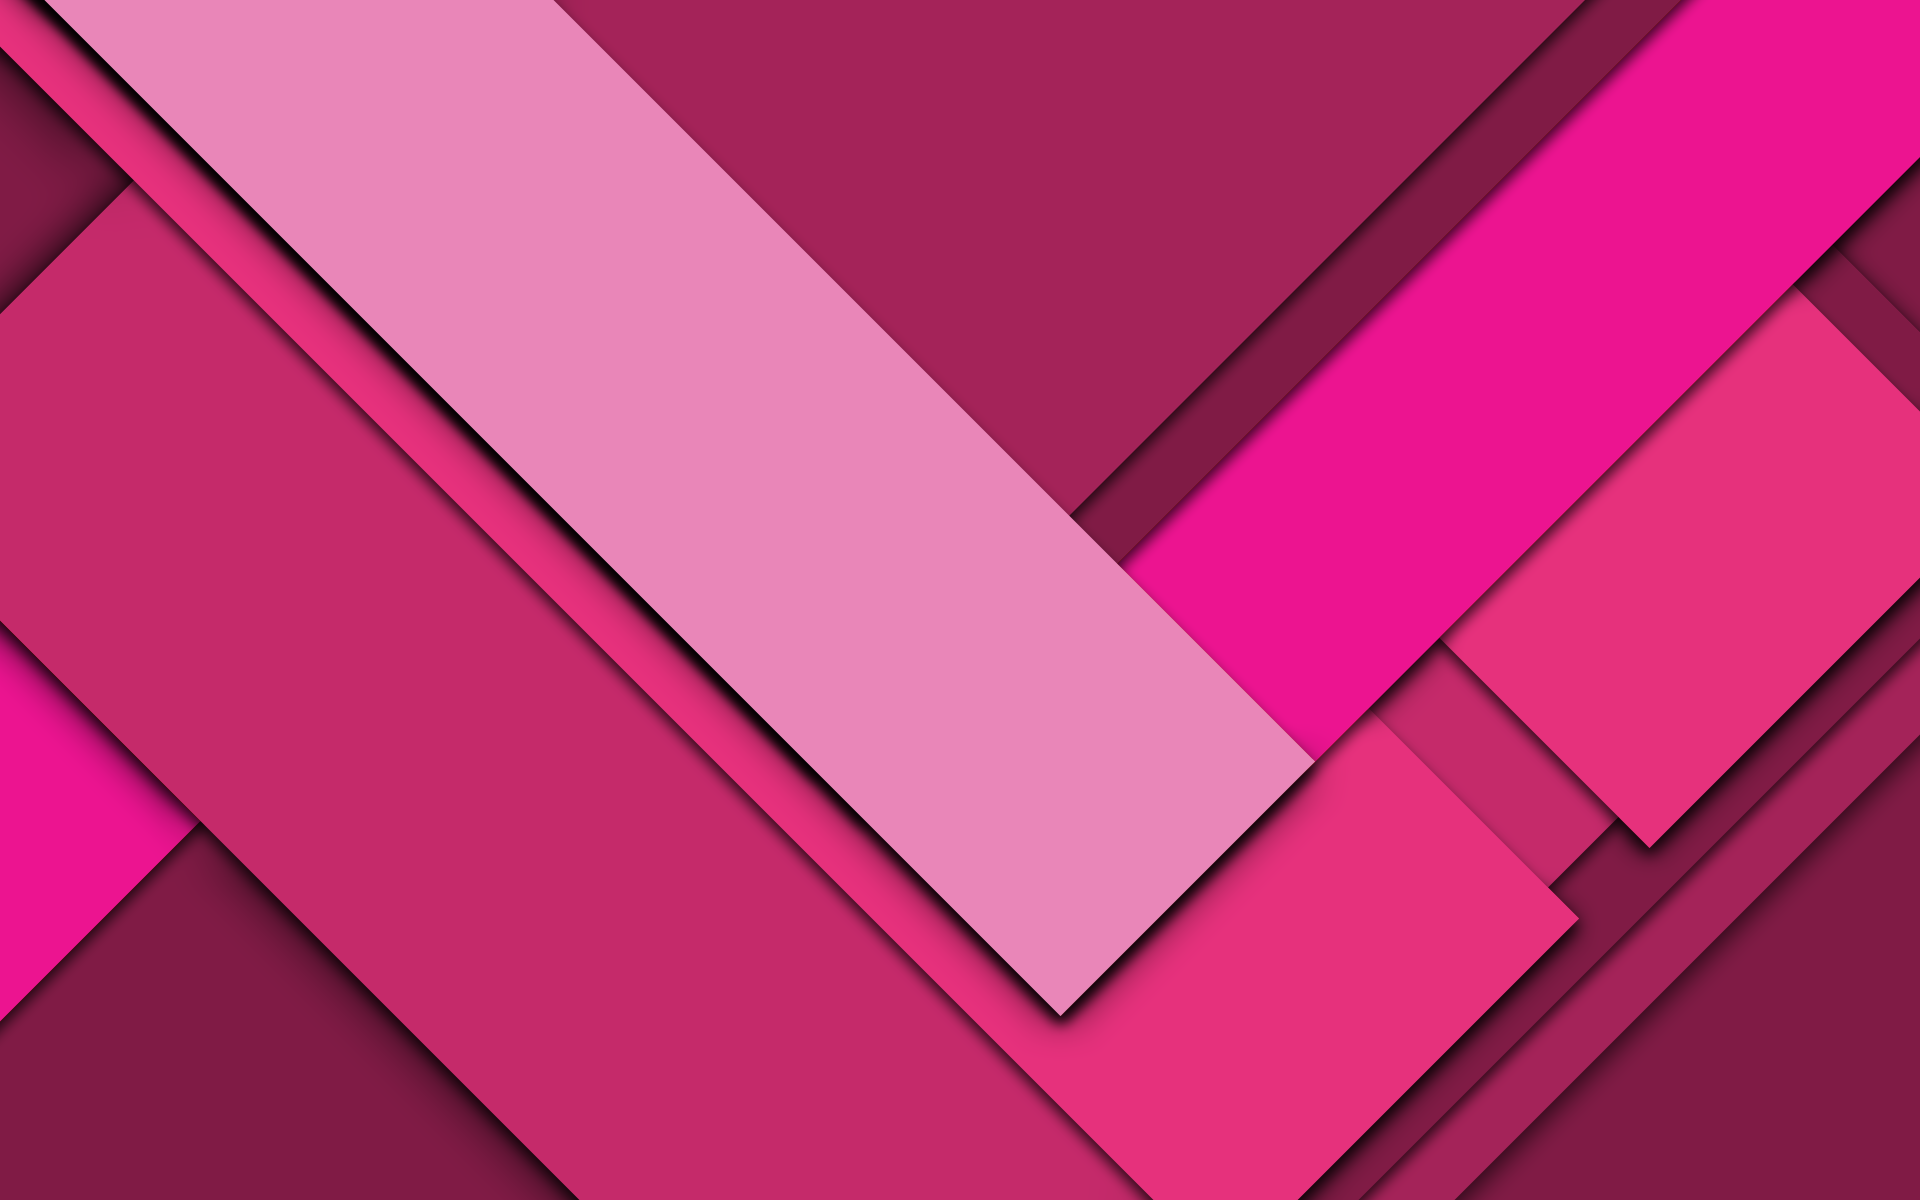 Hd Wallpaper Dimensions Papercolormaterialdesign Pink Ethan S Blog